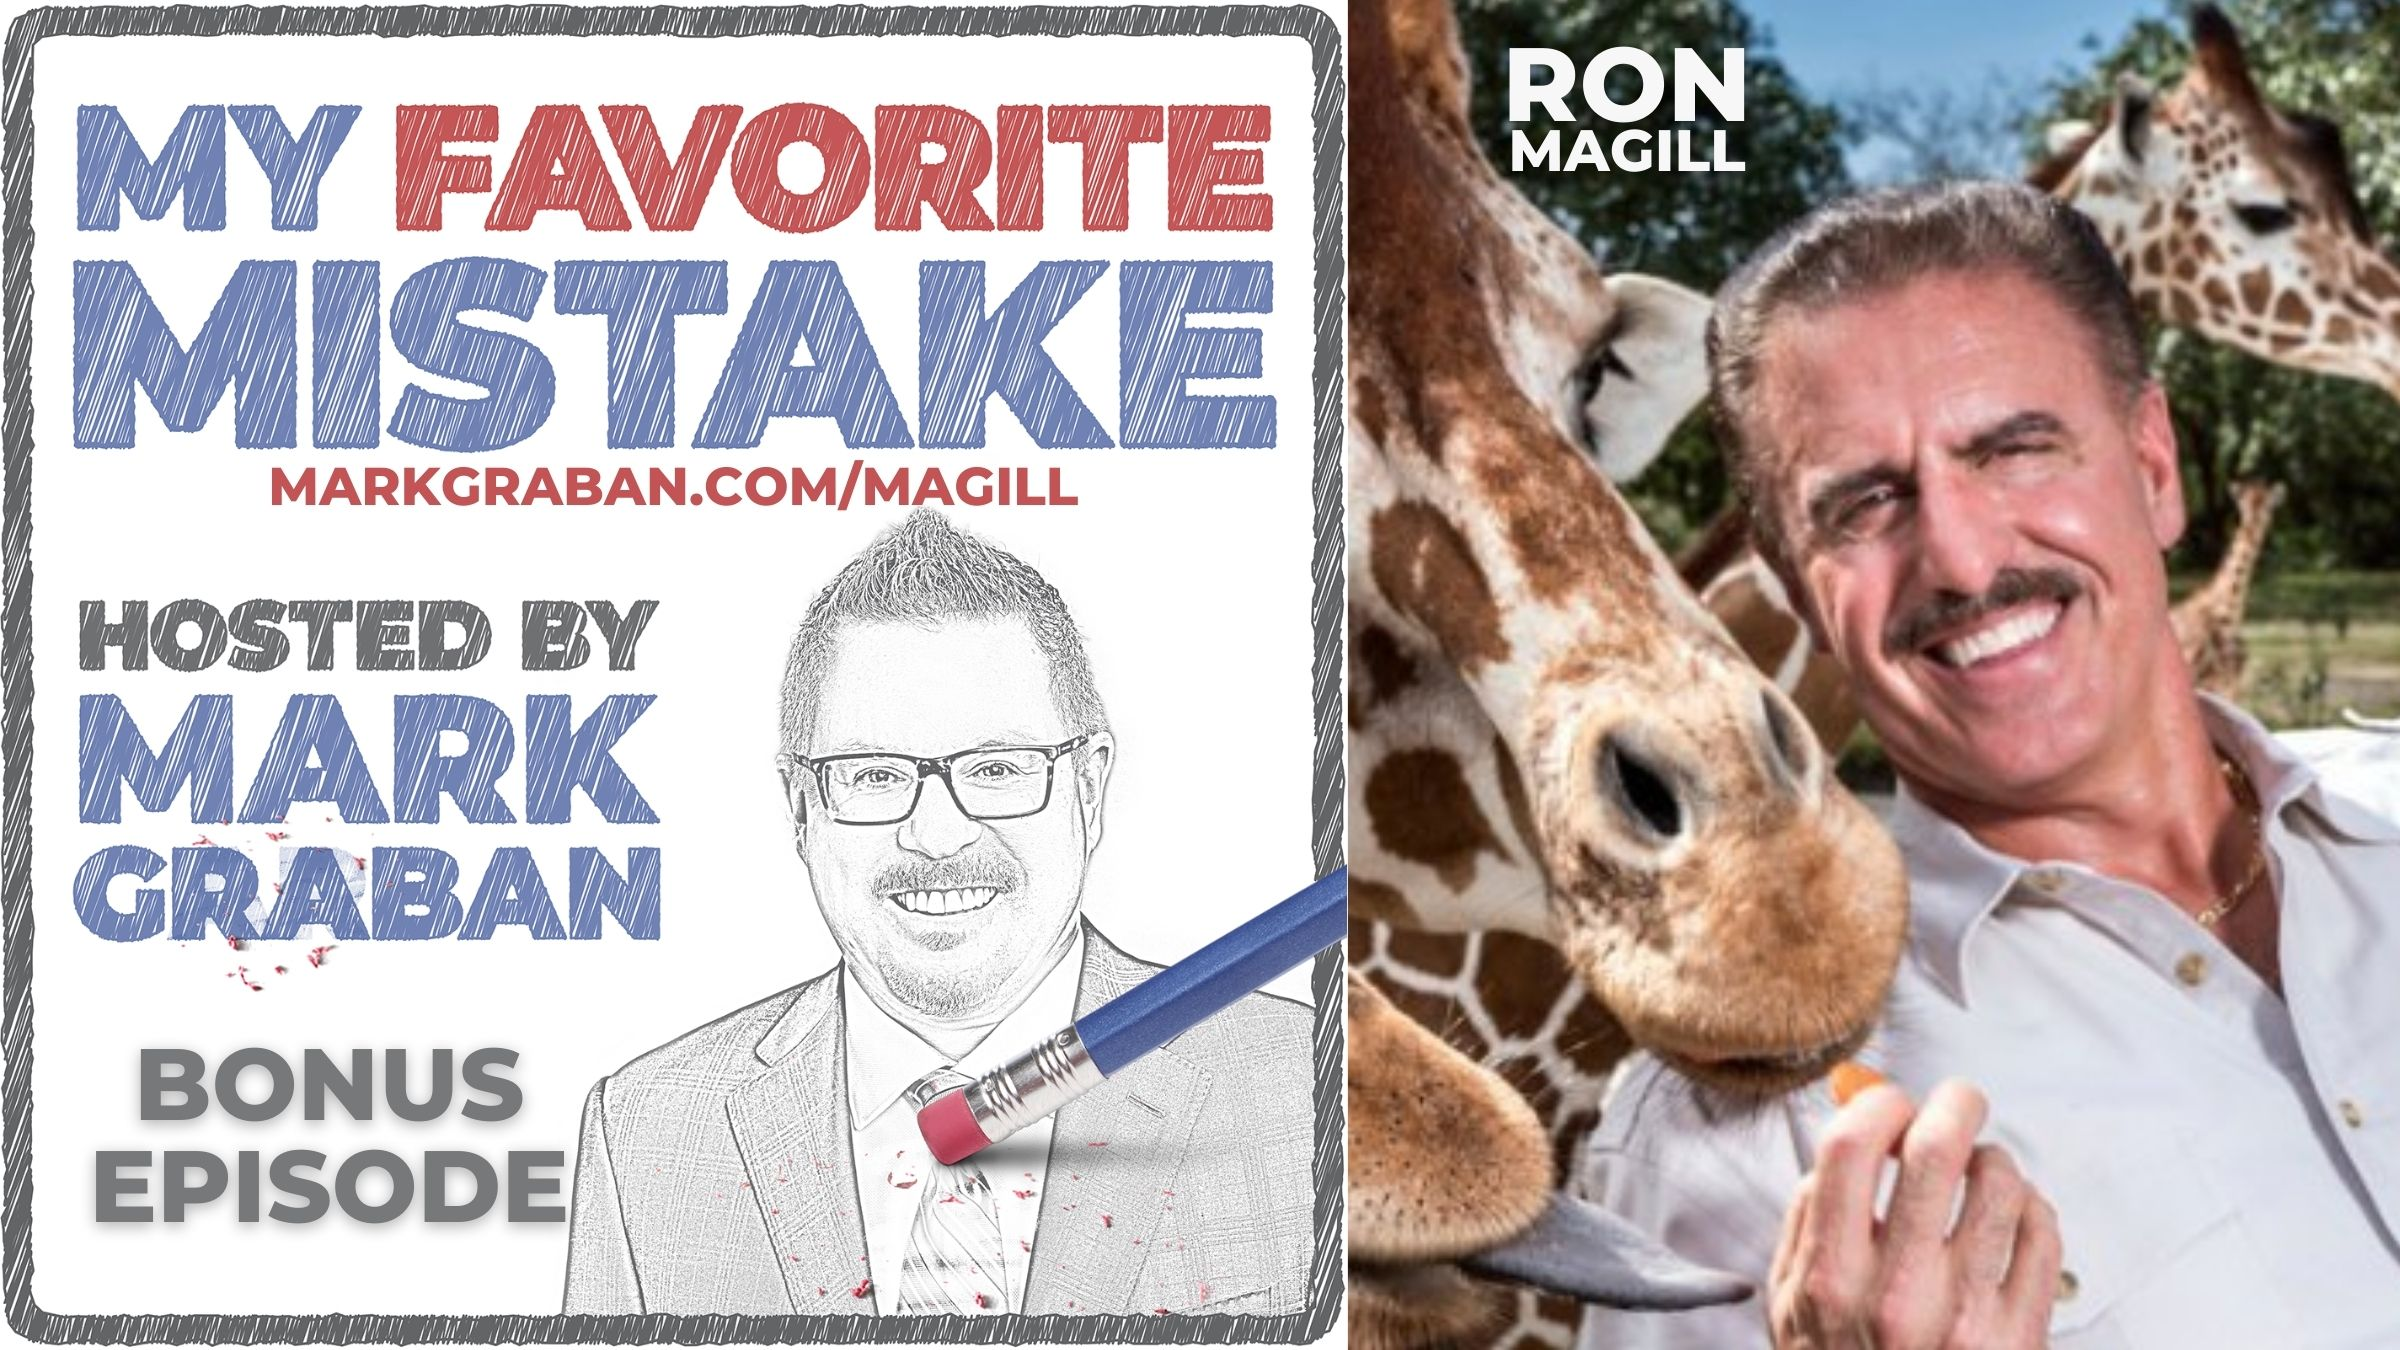 Being Careless with a Crocodile Changed Ron Magill's Life for the Better